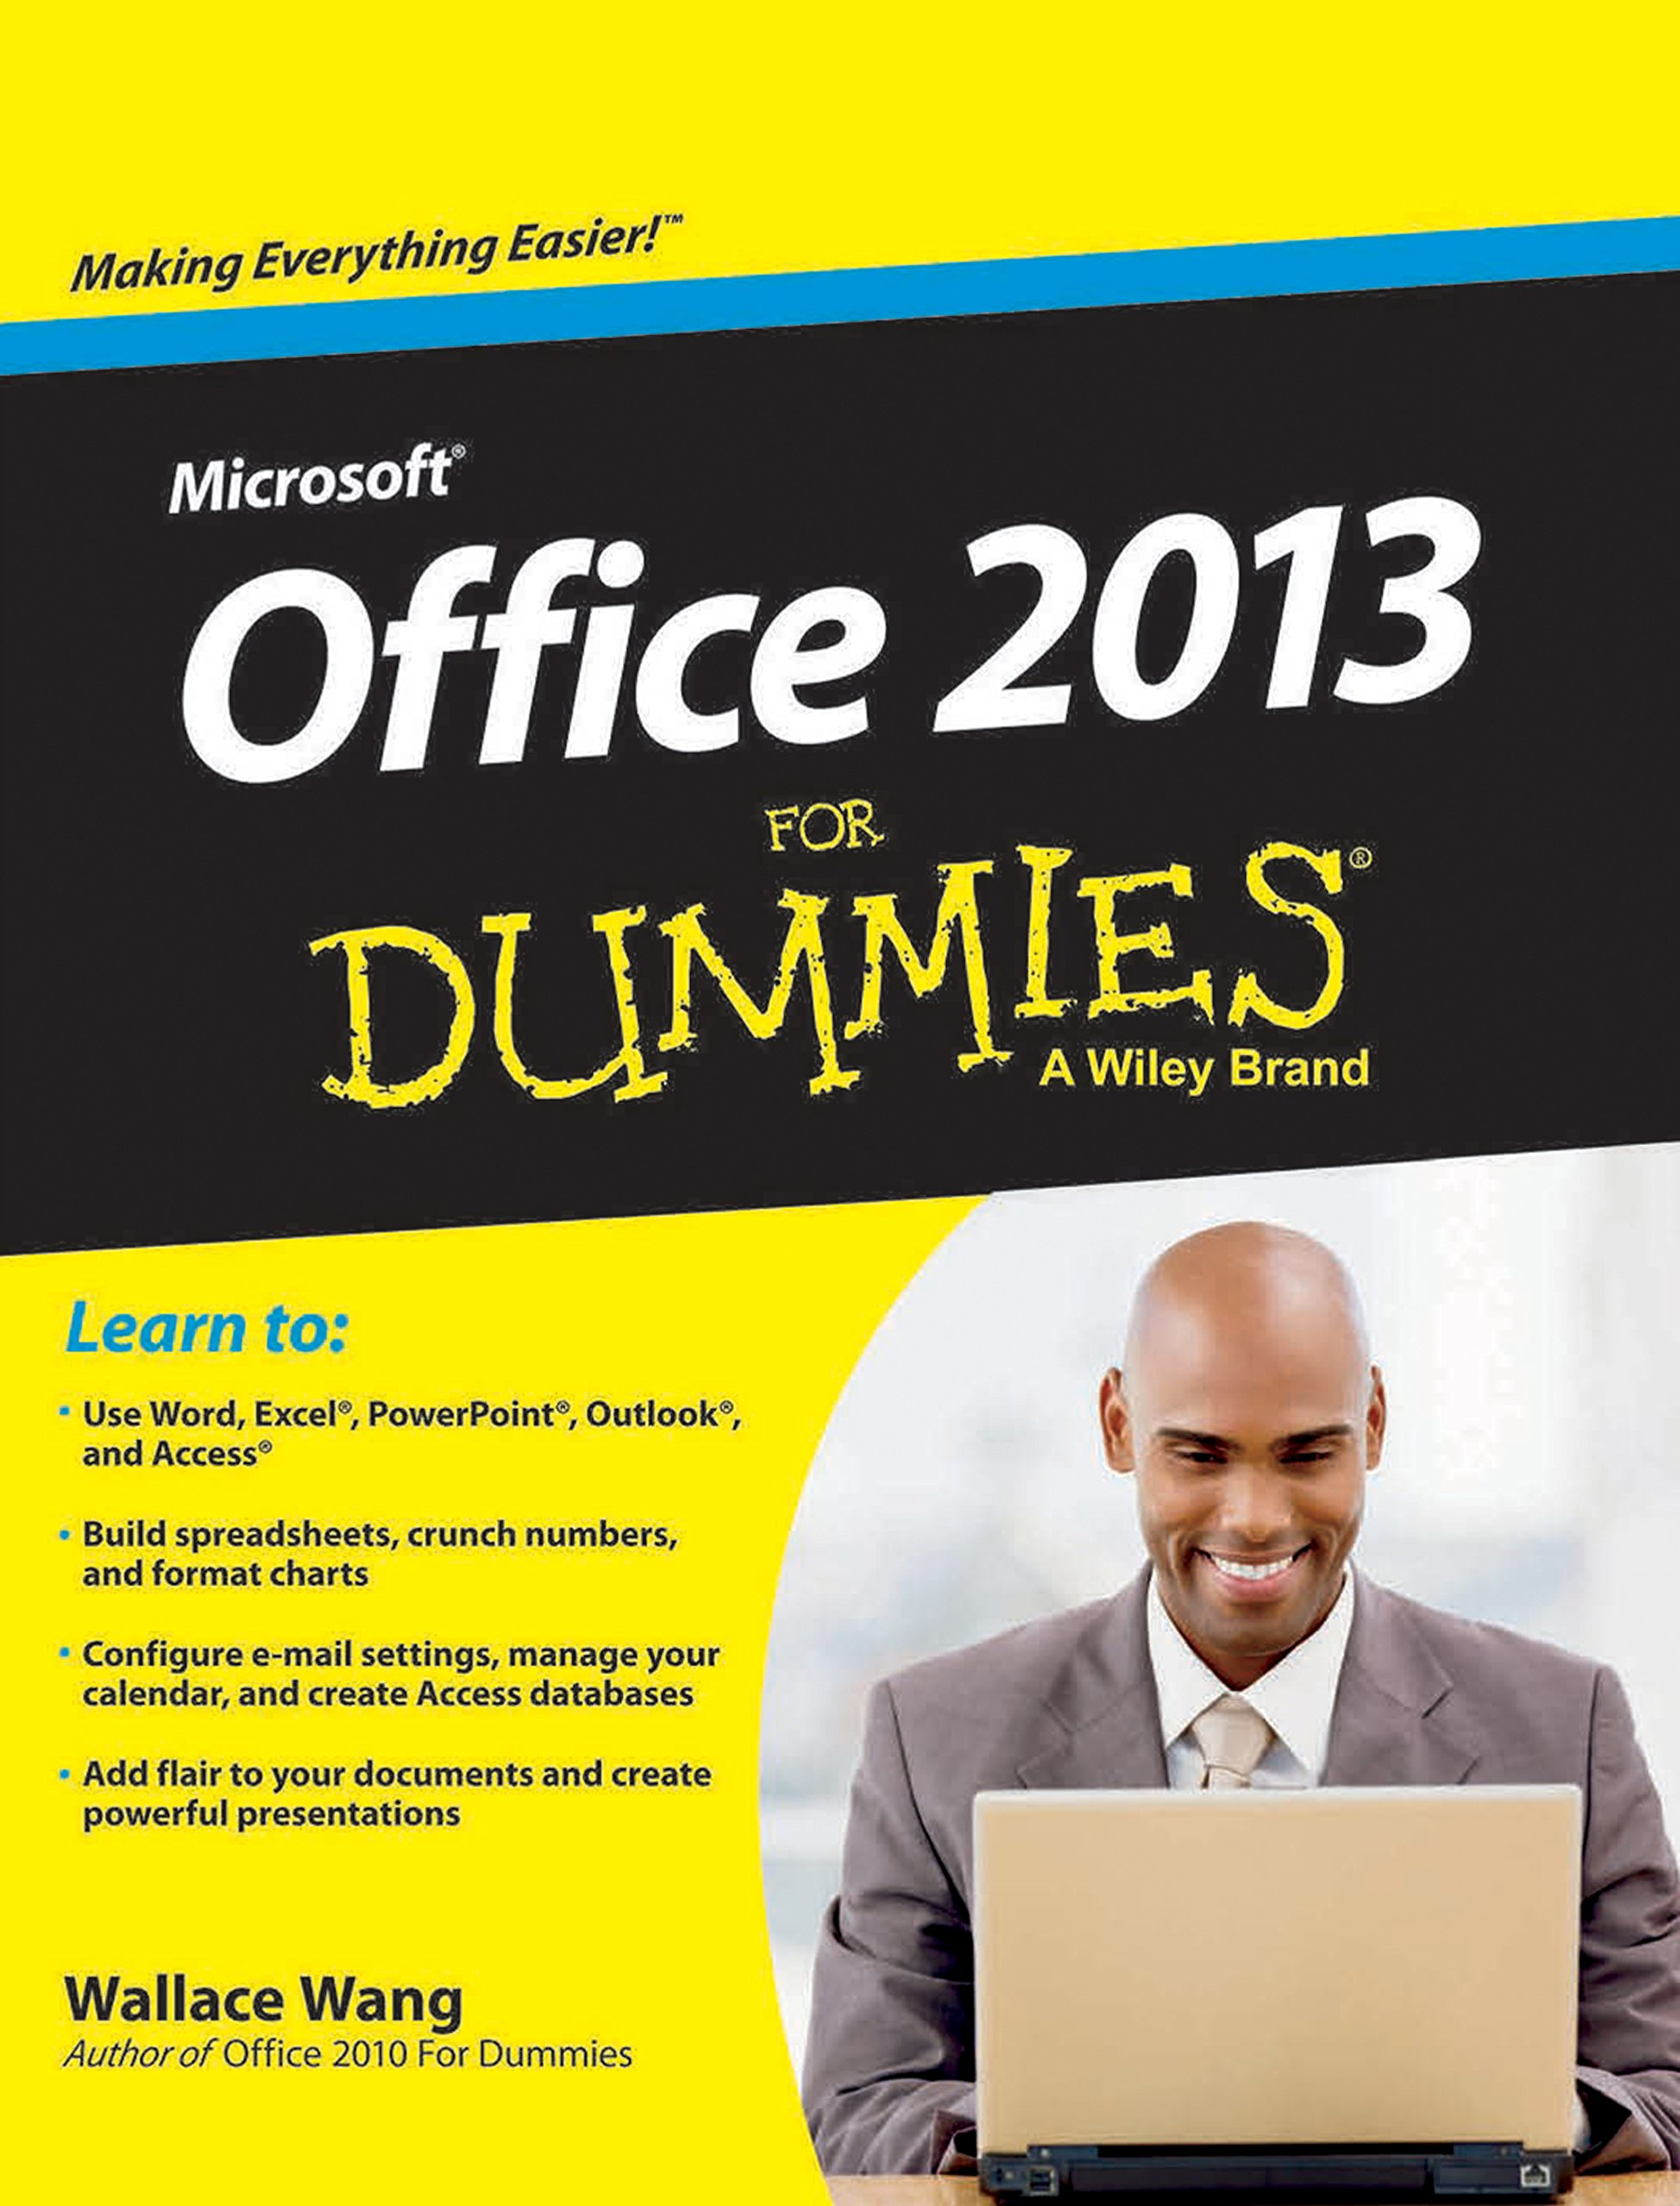 Microsoft Office 2013 for Dummies (With DVD) pdf